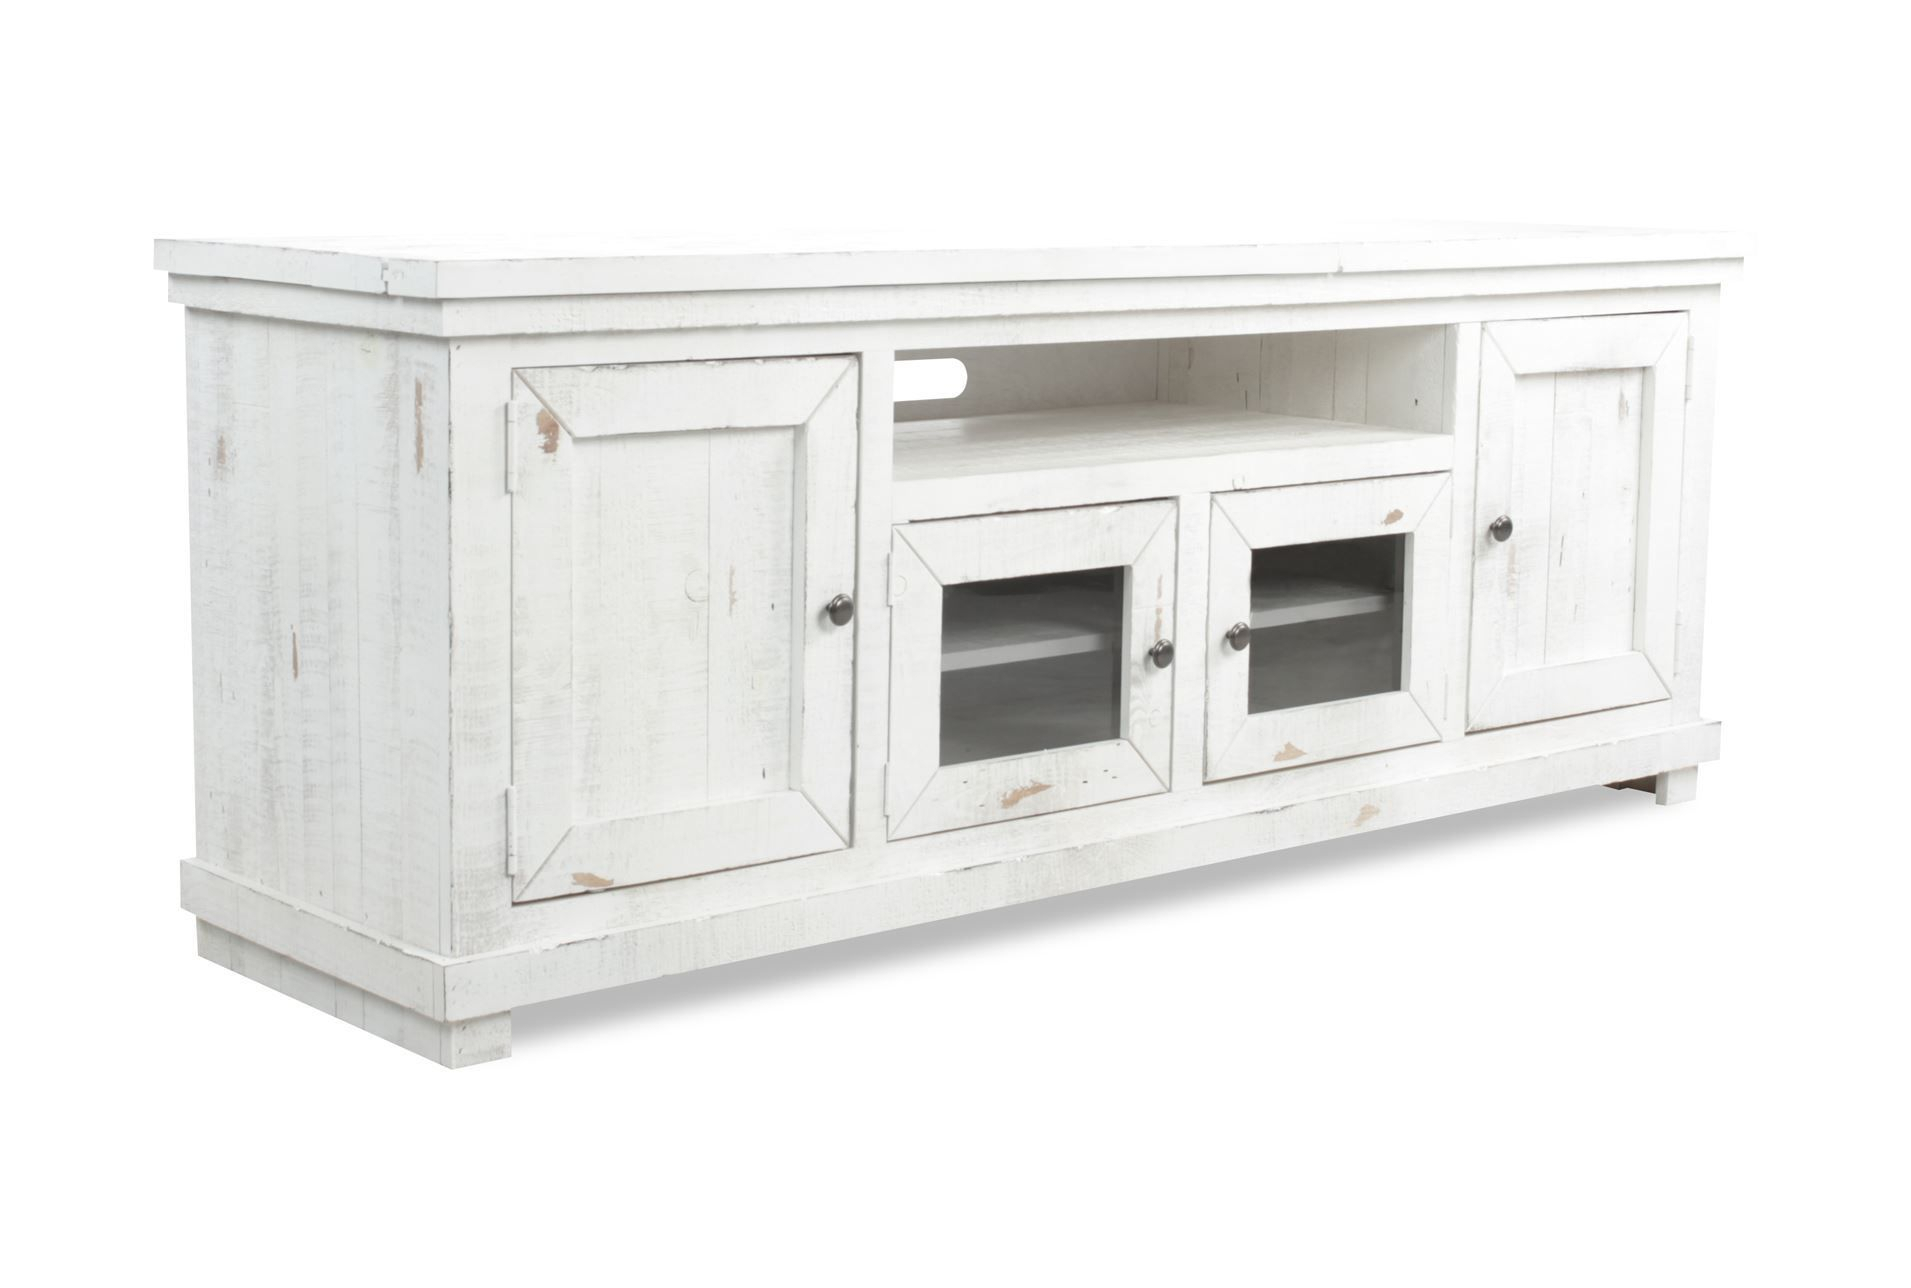 Sinclair White 74 Inch Tv Stand | Home Ideas | Pinterest | Living Intended For Sinclair White 64 Inch Tv Stands (View 8 of 30)